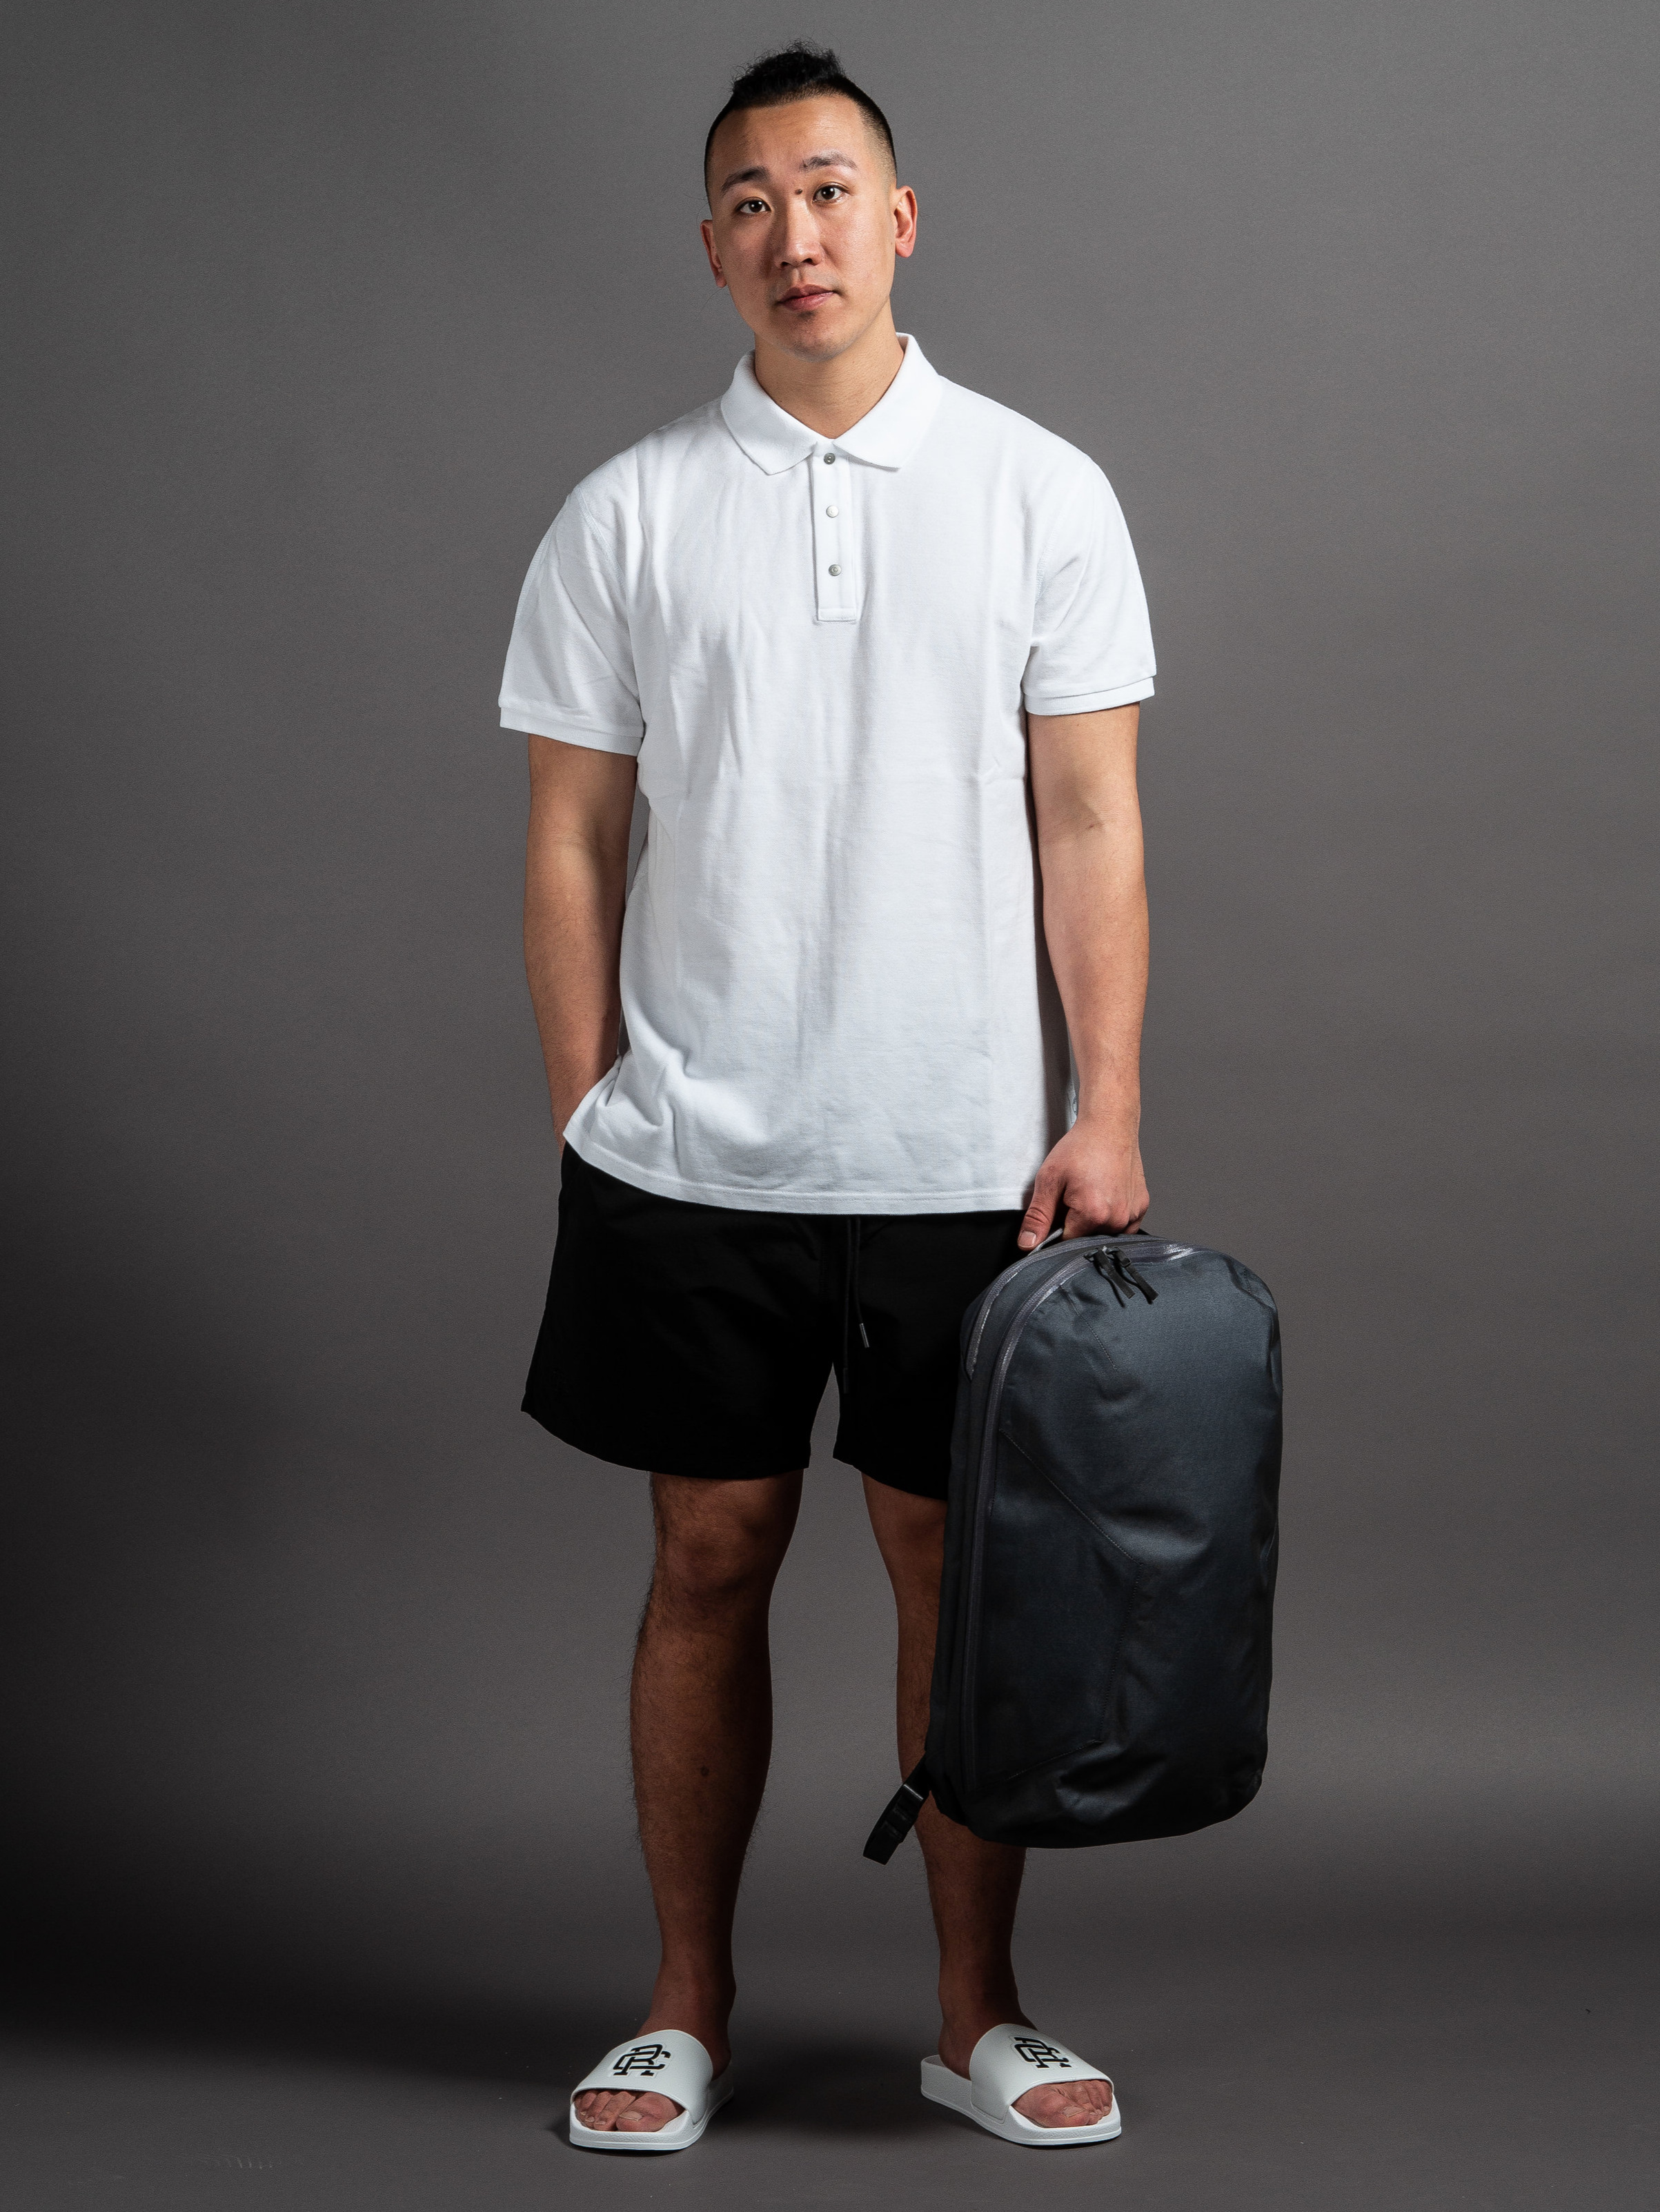 Reigning Champ Polo Tee  Reigning Champ Swim Shorts  Arc'teryx Veilance Nomin Pack  Reigning Champ Slides    SHOP THIS LOOK